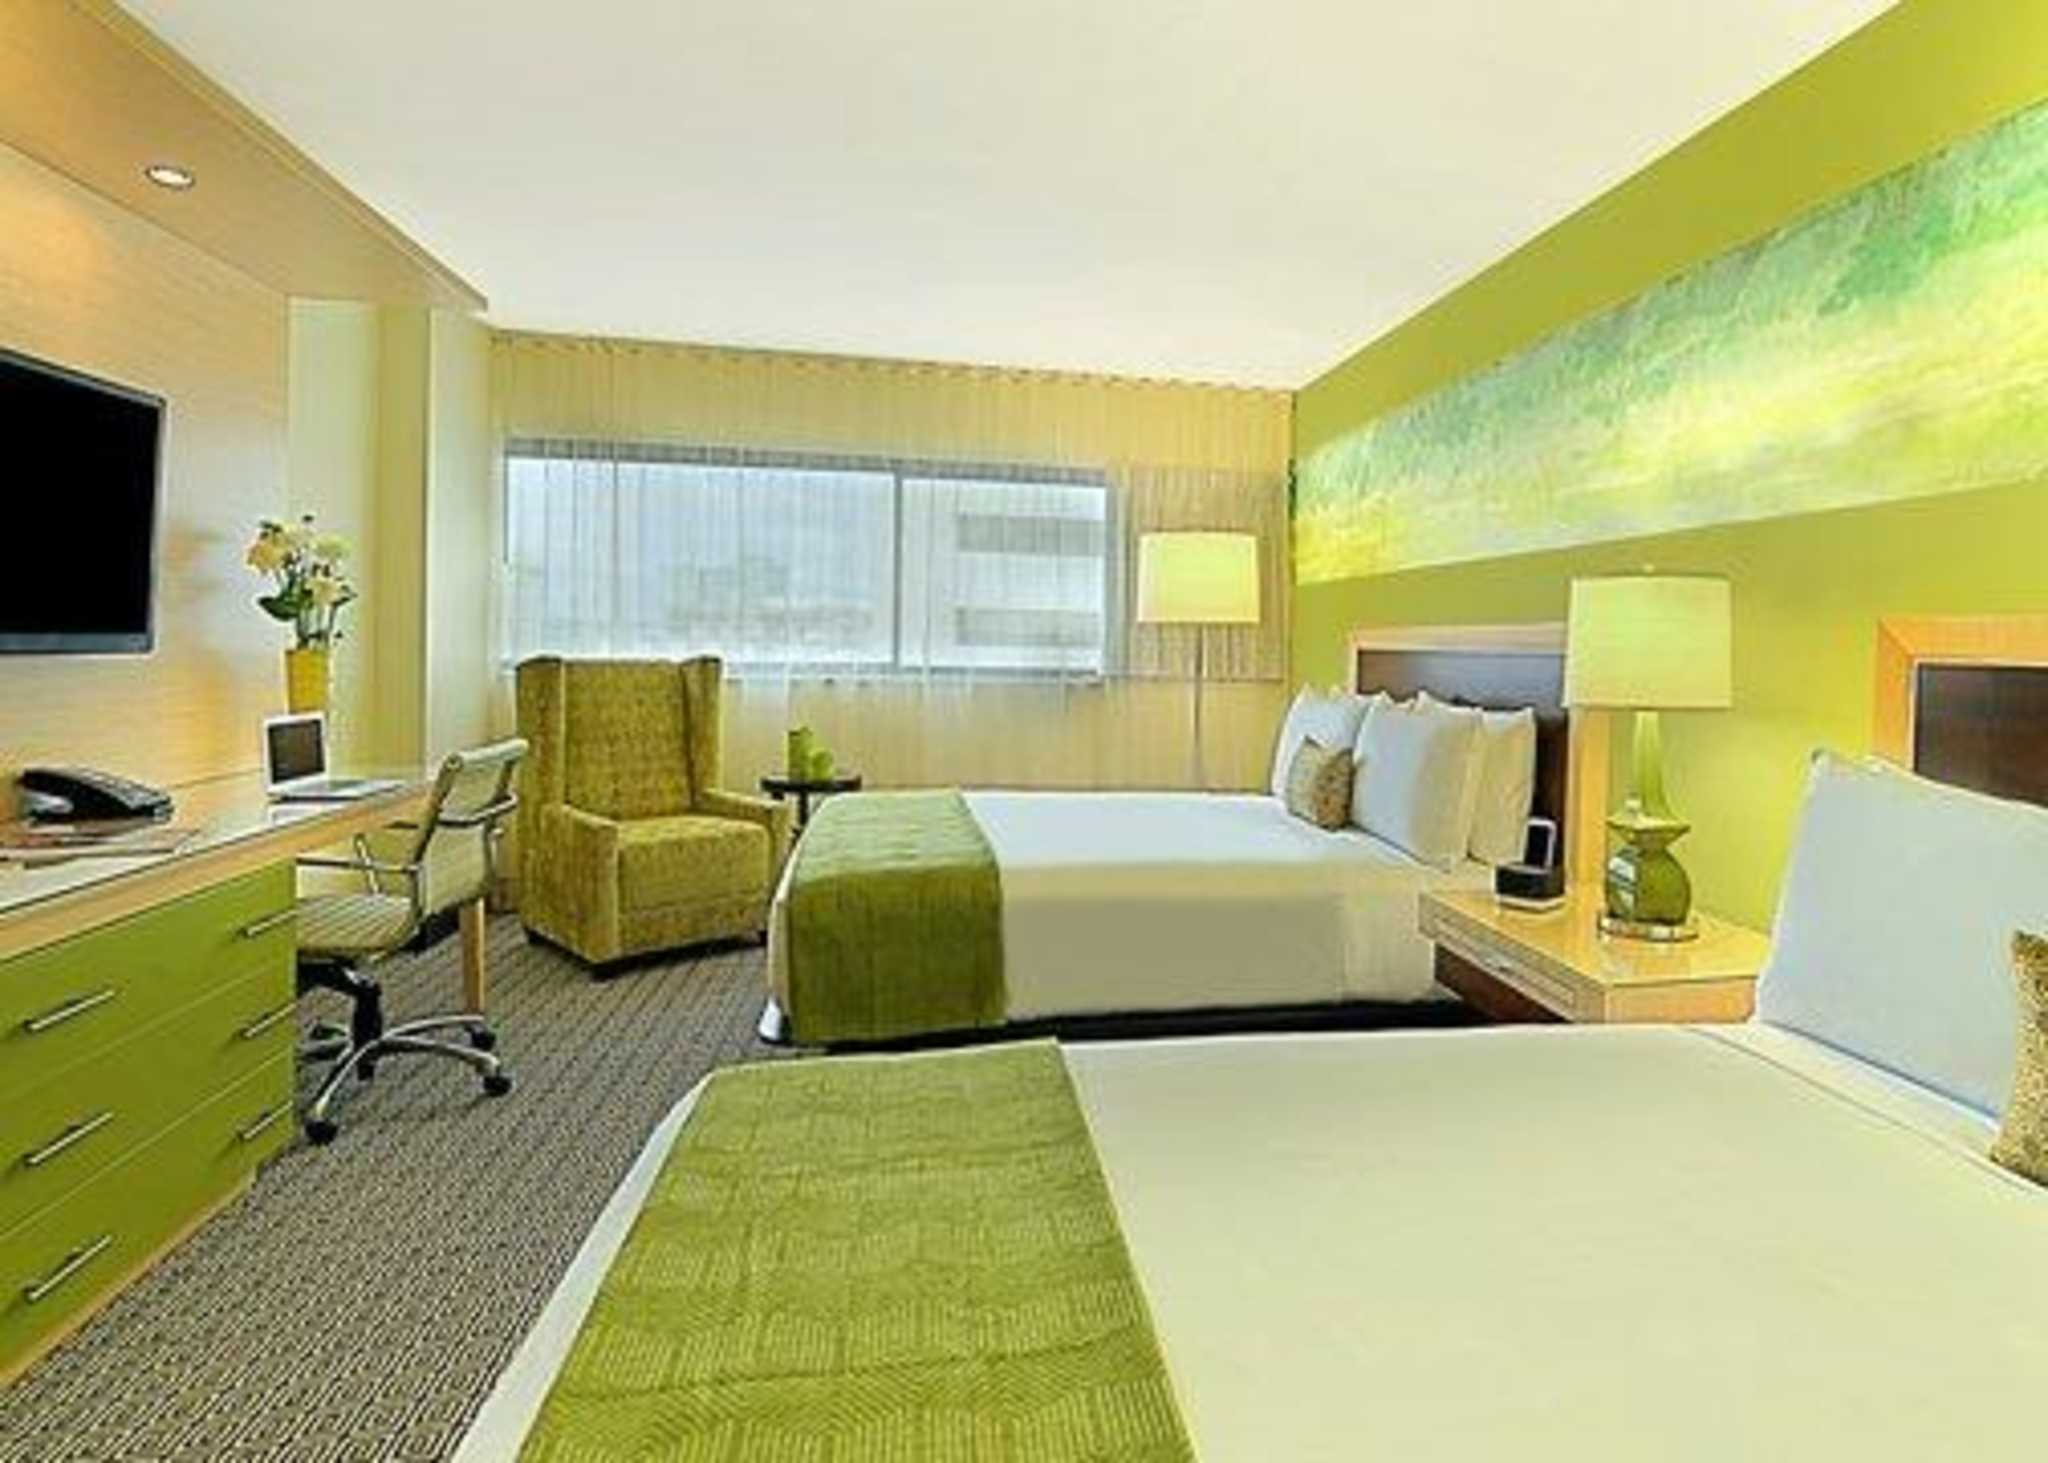 Downtown Grand Hotel & Casino, Ascend Hotel Collection - Closed in Las Vegas, NV, photo #5